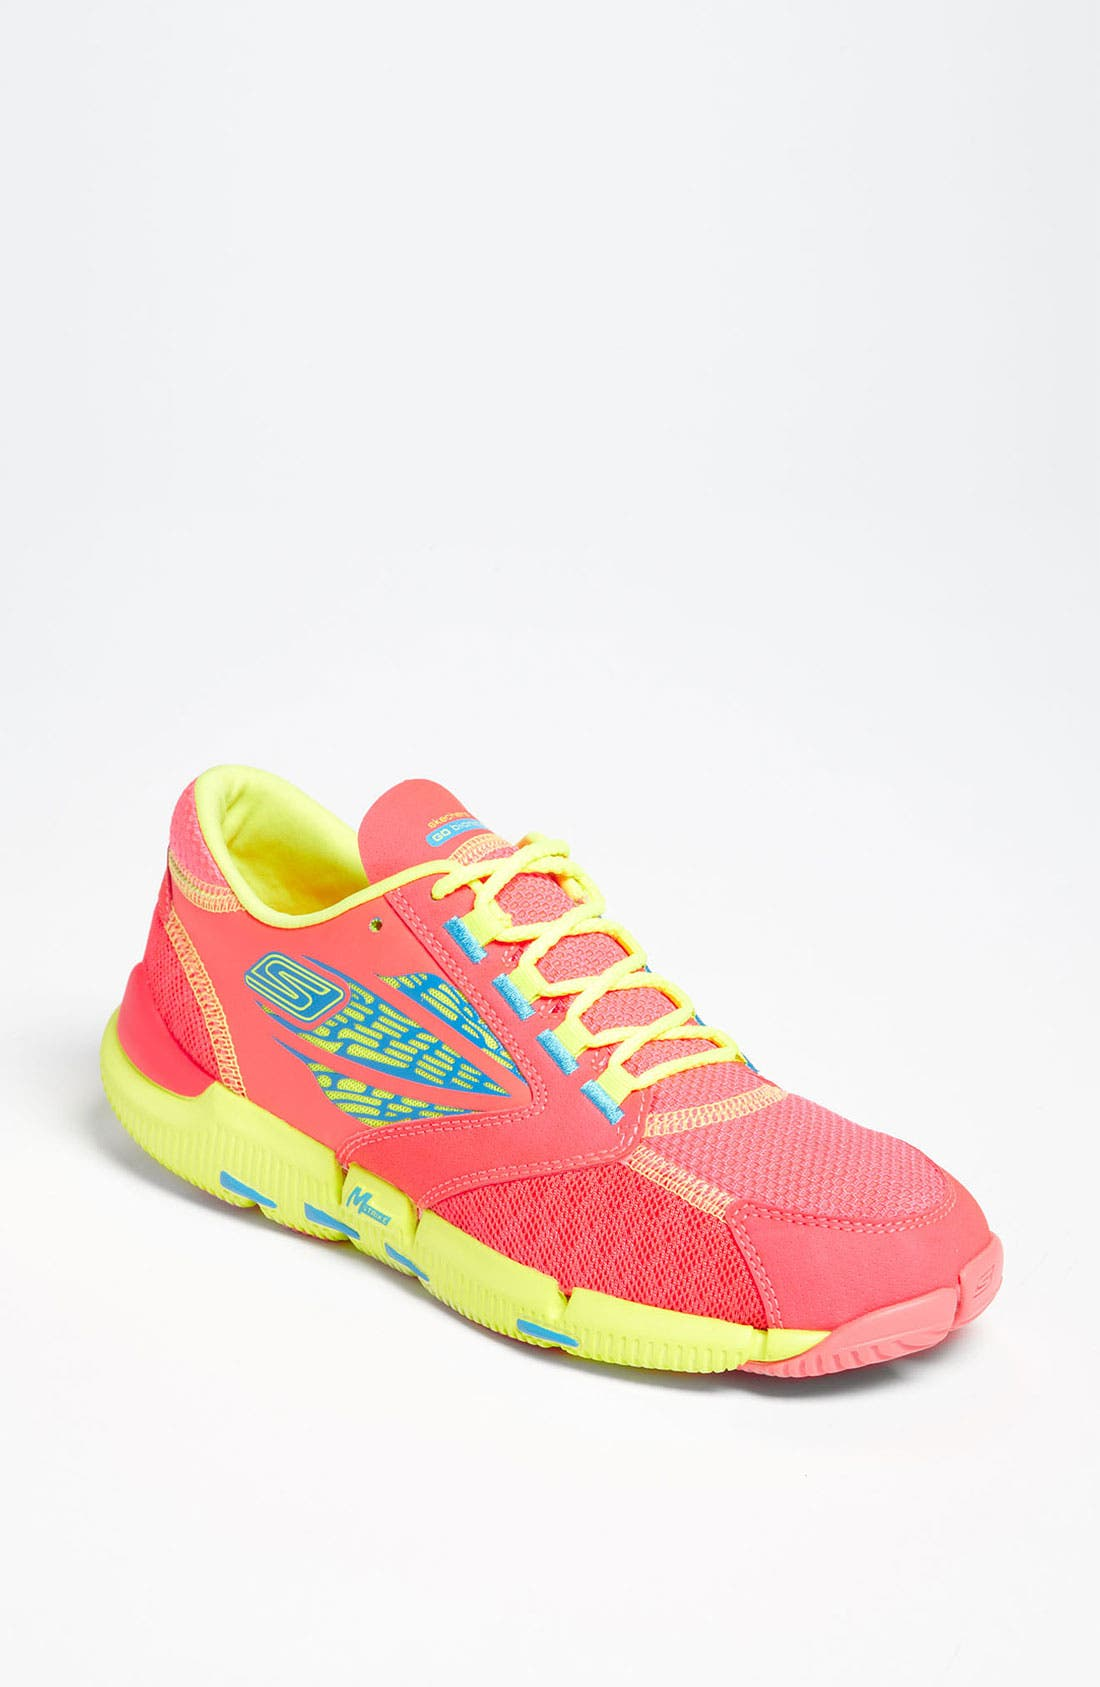 Main Image - SKECHERS 'GOBionic Ride' Running Shoe (Women)